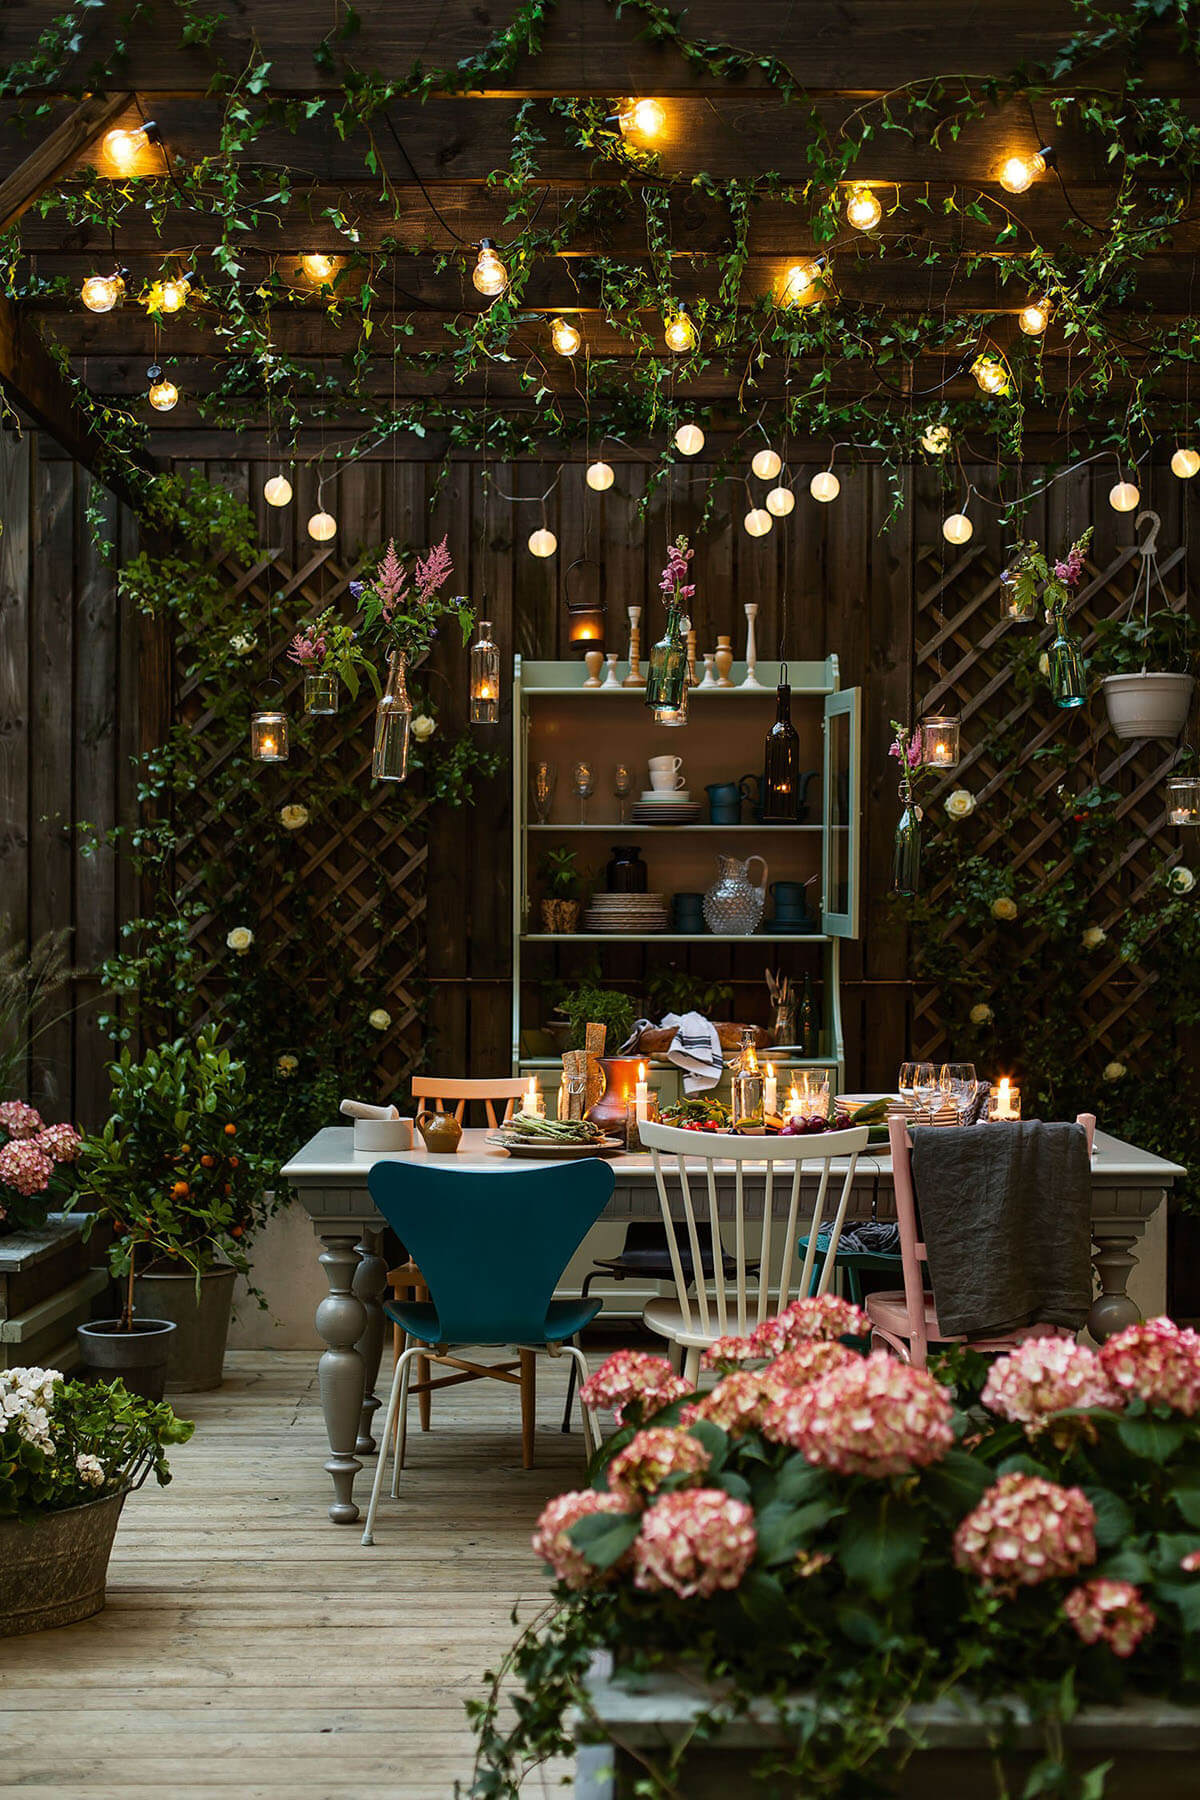 27 Best Backyard Lighting Ideas and Designs for 2017 on Whimsical Backyard Ideas id=48132